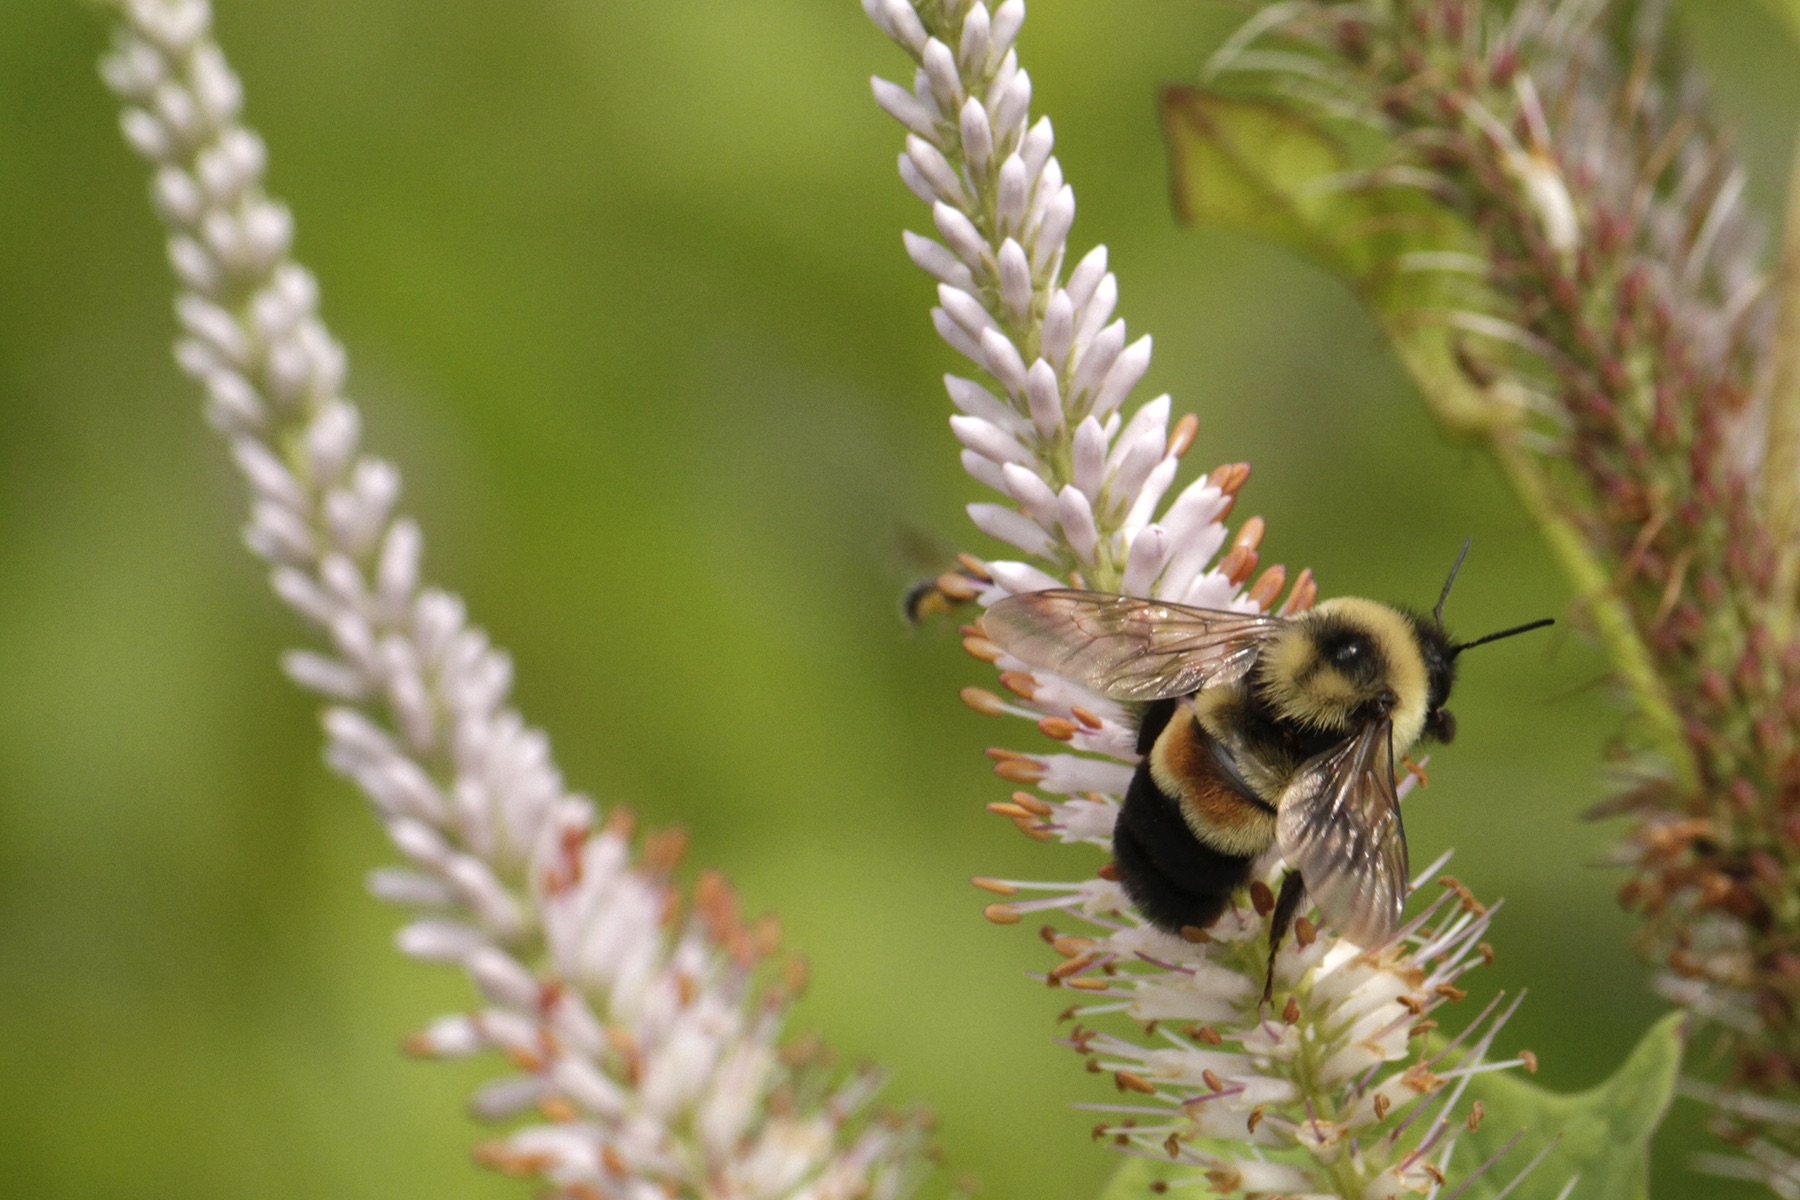 Take 5 steps to bring back pollinator populations